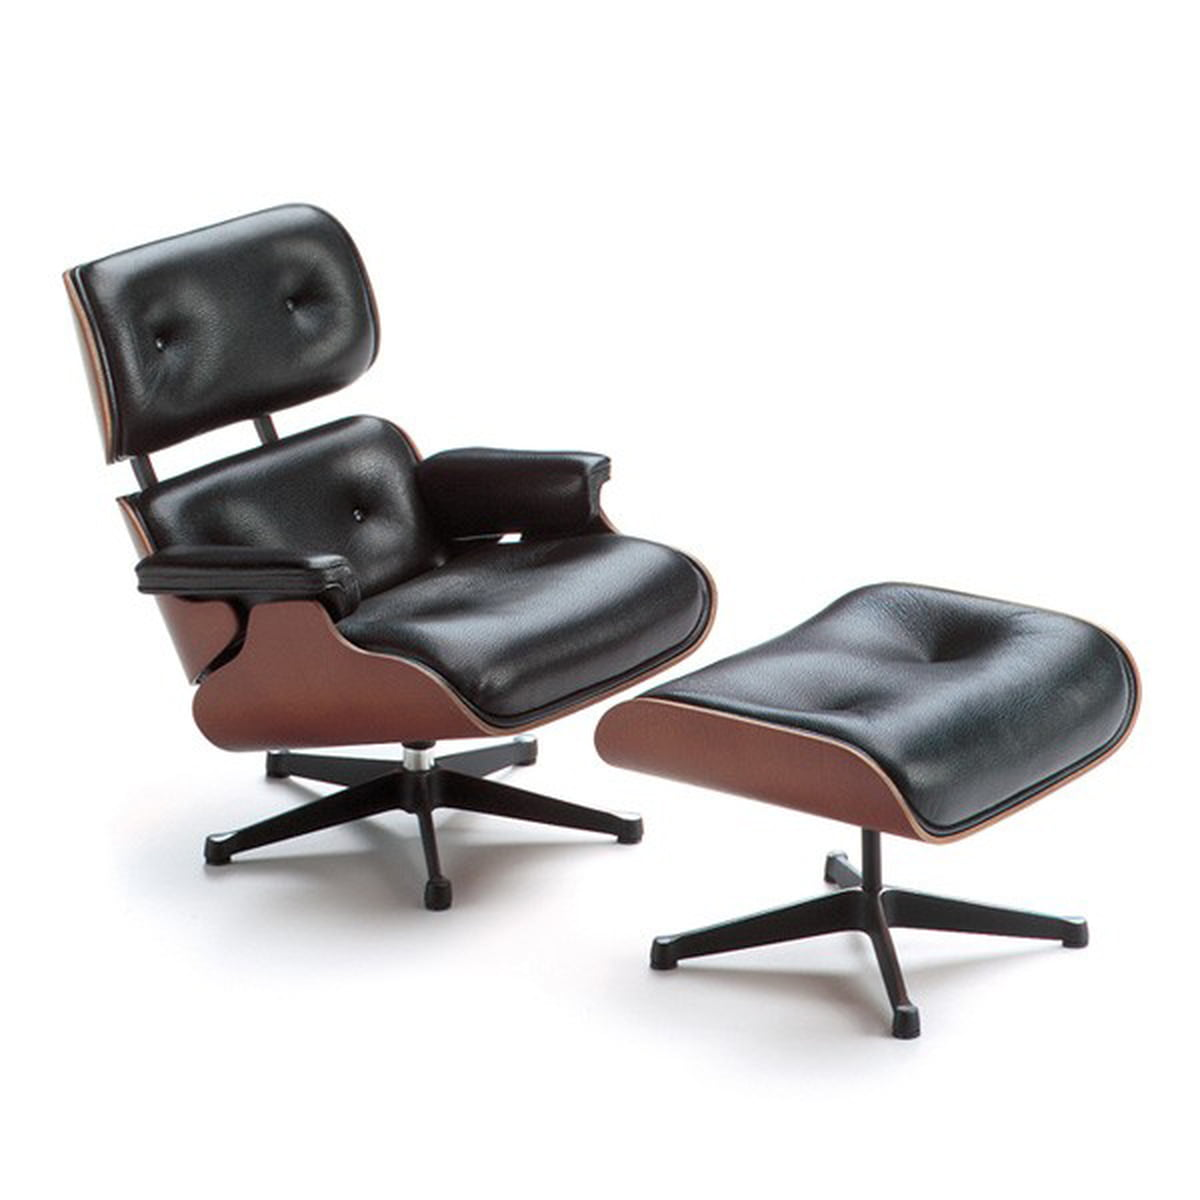 Fine Vitra Miniature Lounge Chair Ottoman Inzonedesignstudio Interior Chair Design Inzonedesignstudiocom